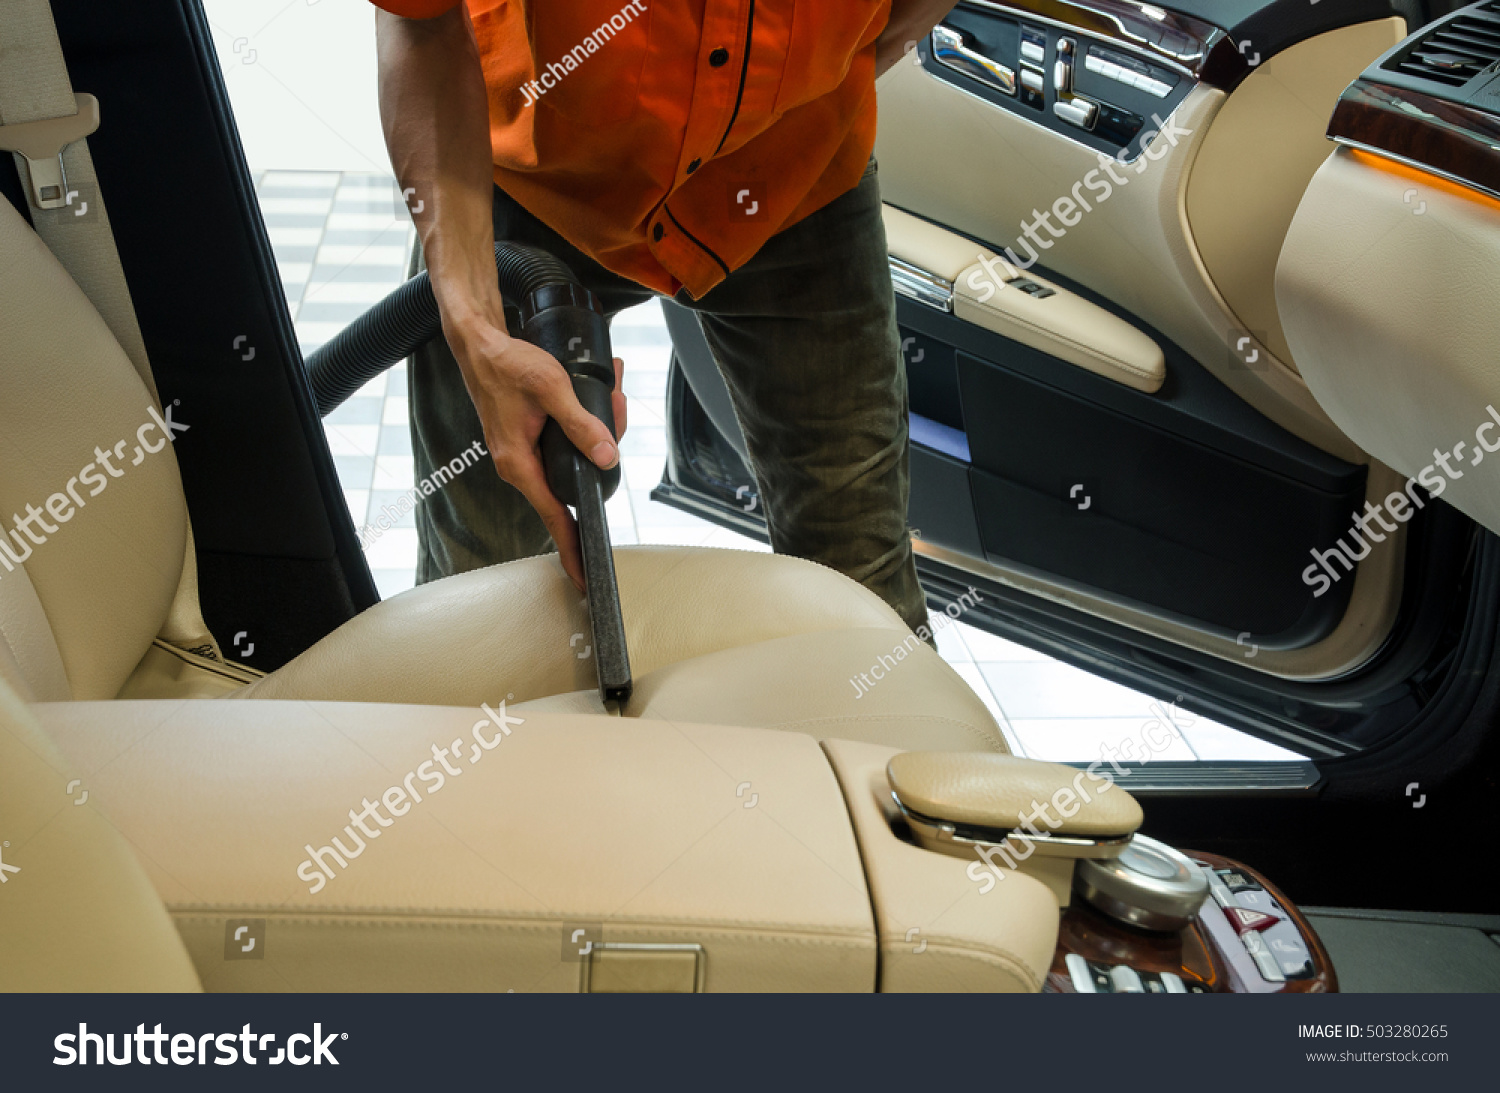 cleaning of interior of the car with vacuum cleaner car cleaning stock photo 503280265. Black Bedroom Furniture Sets. Home Design Ideas